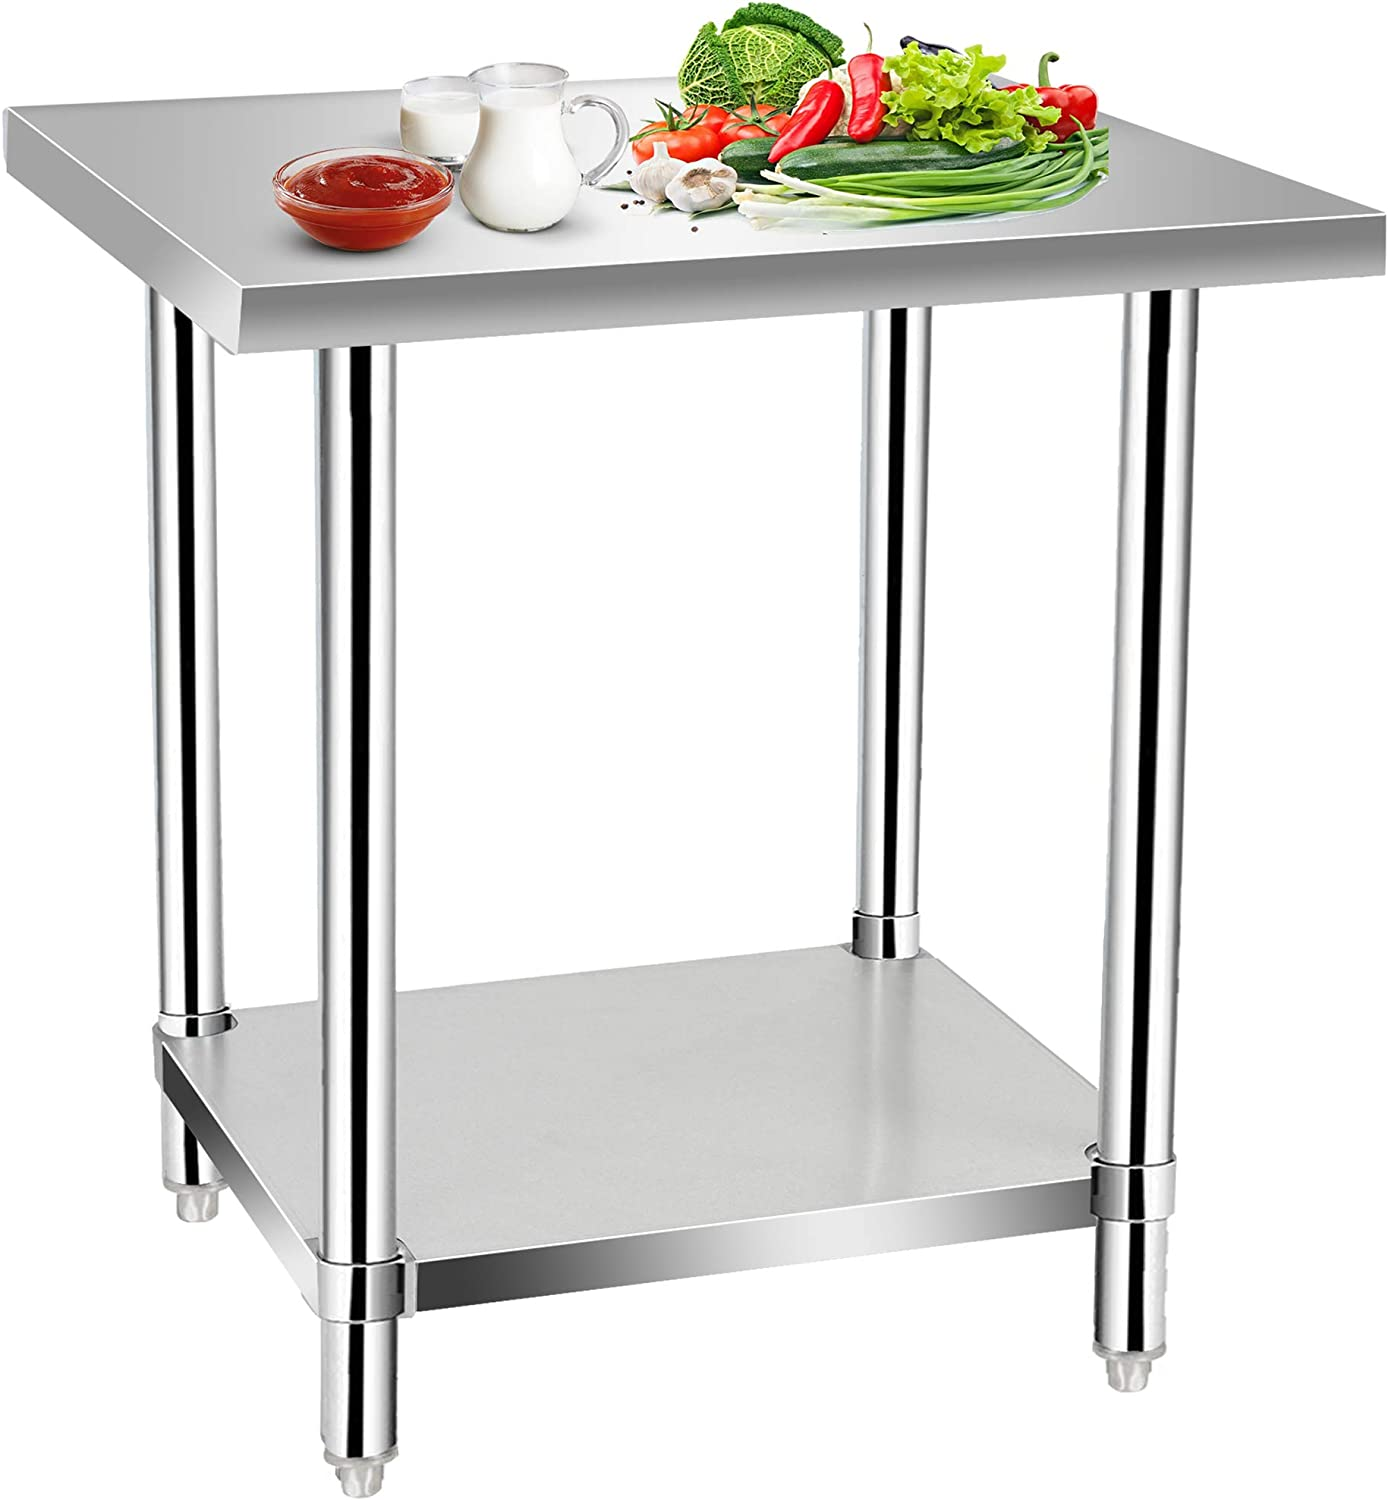 Commercial Kitchen Prep & Work Table, KITMA Stainless Steel Food Prep Table, 30 x 24 Inches,NSF